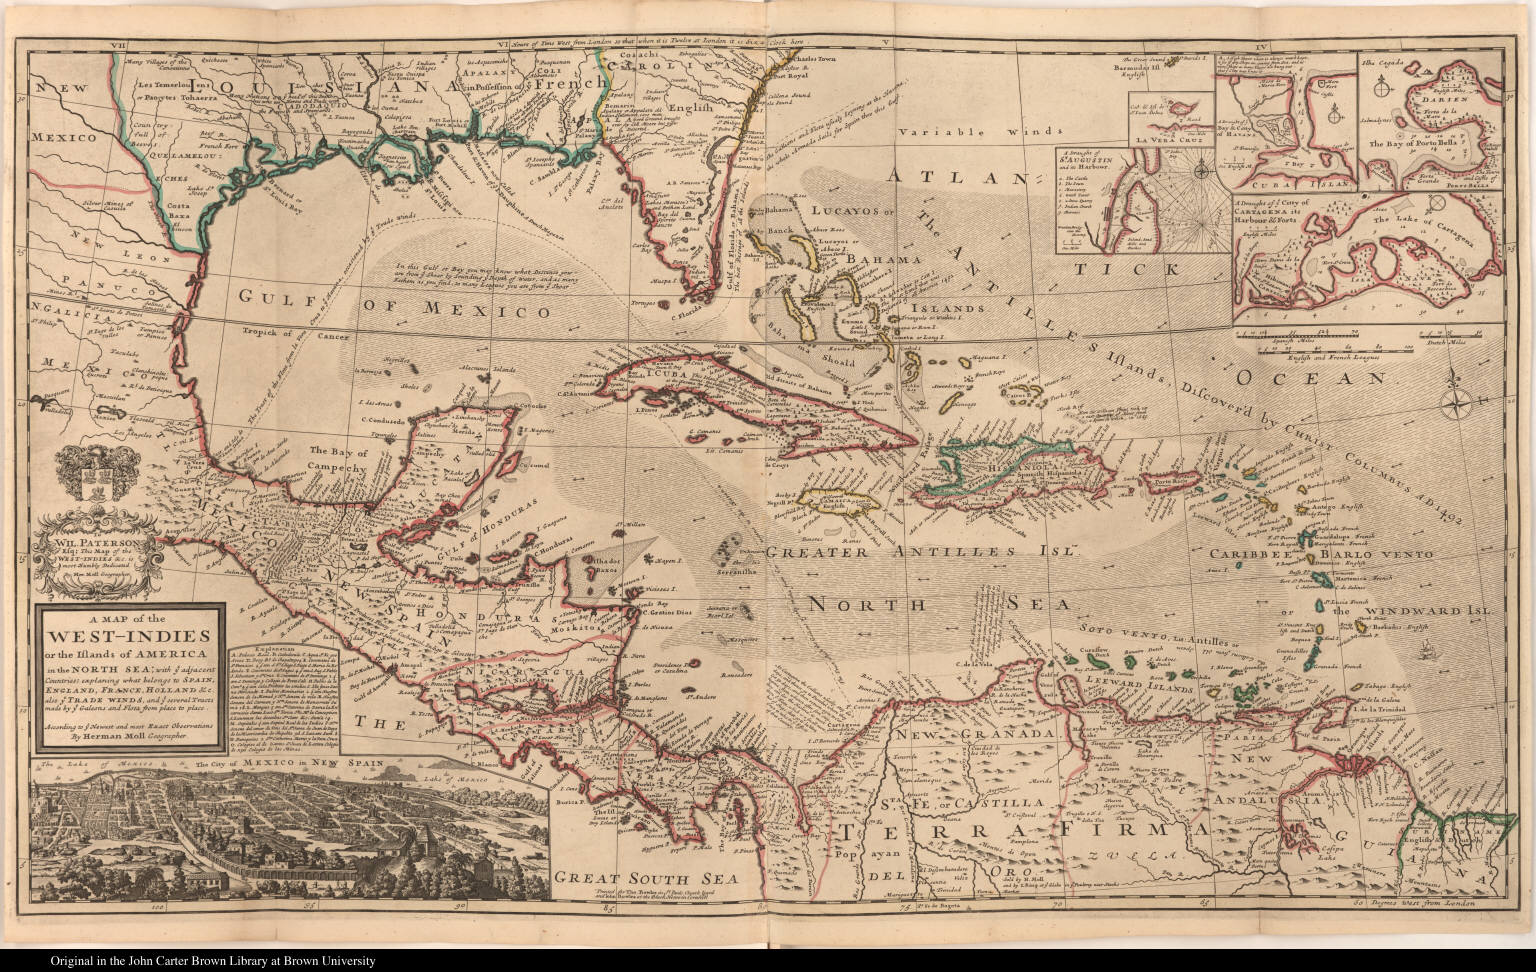 A Map of the West-Indies or the Islands of America ...